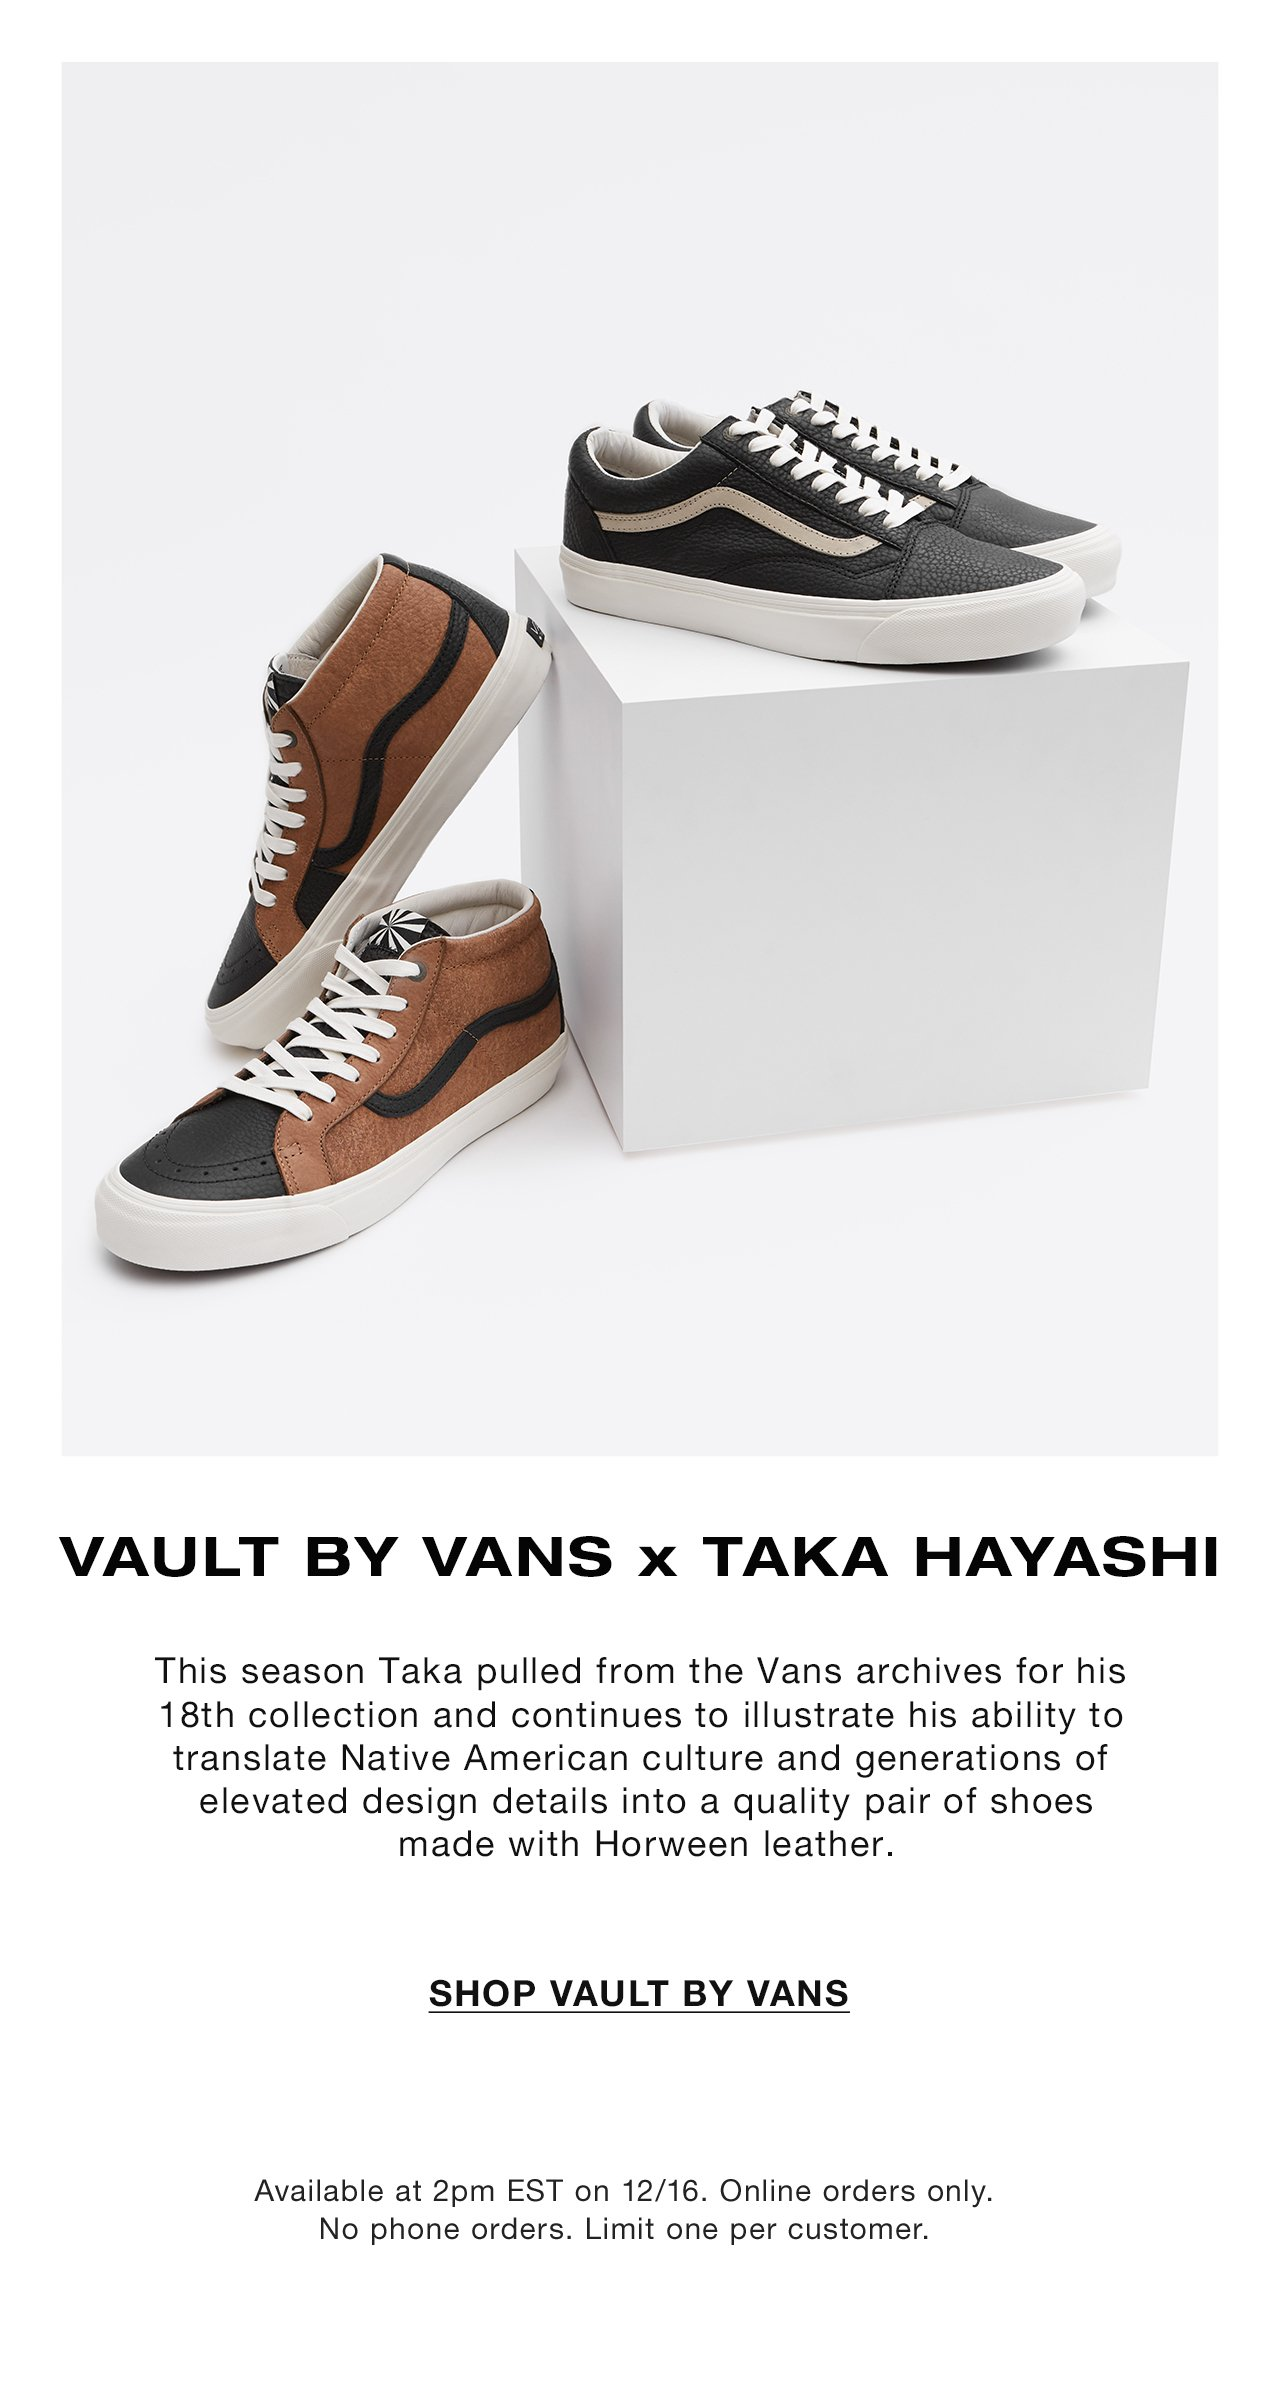 336219c9be Special Release  Vault by Vans x Taka Hayashi - Need Supply Co ...